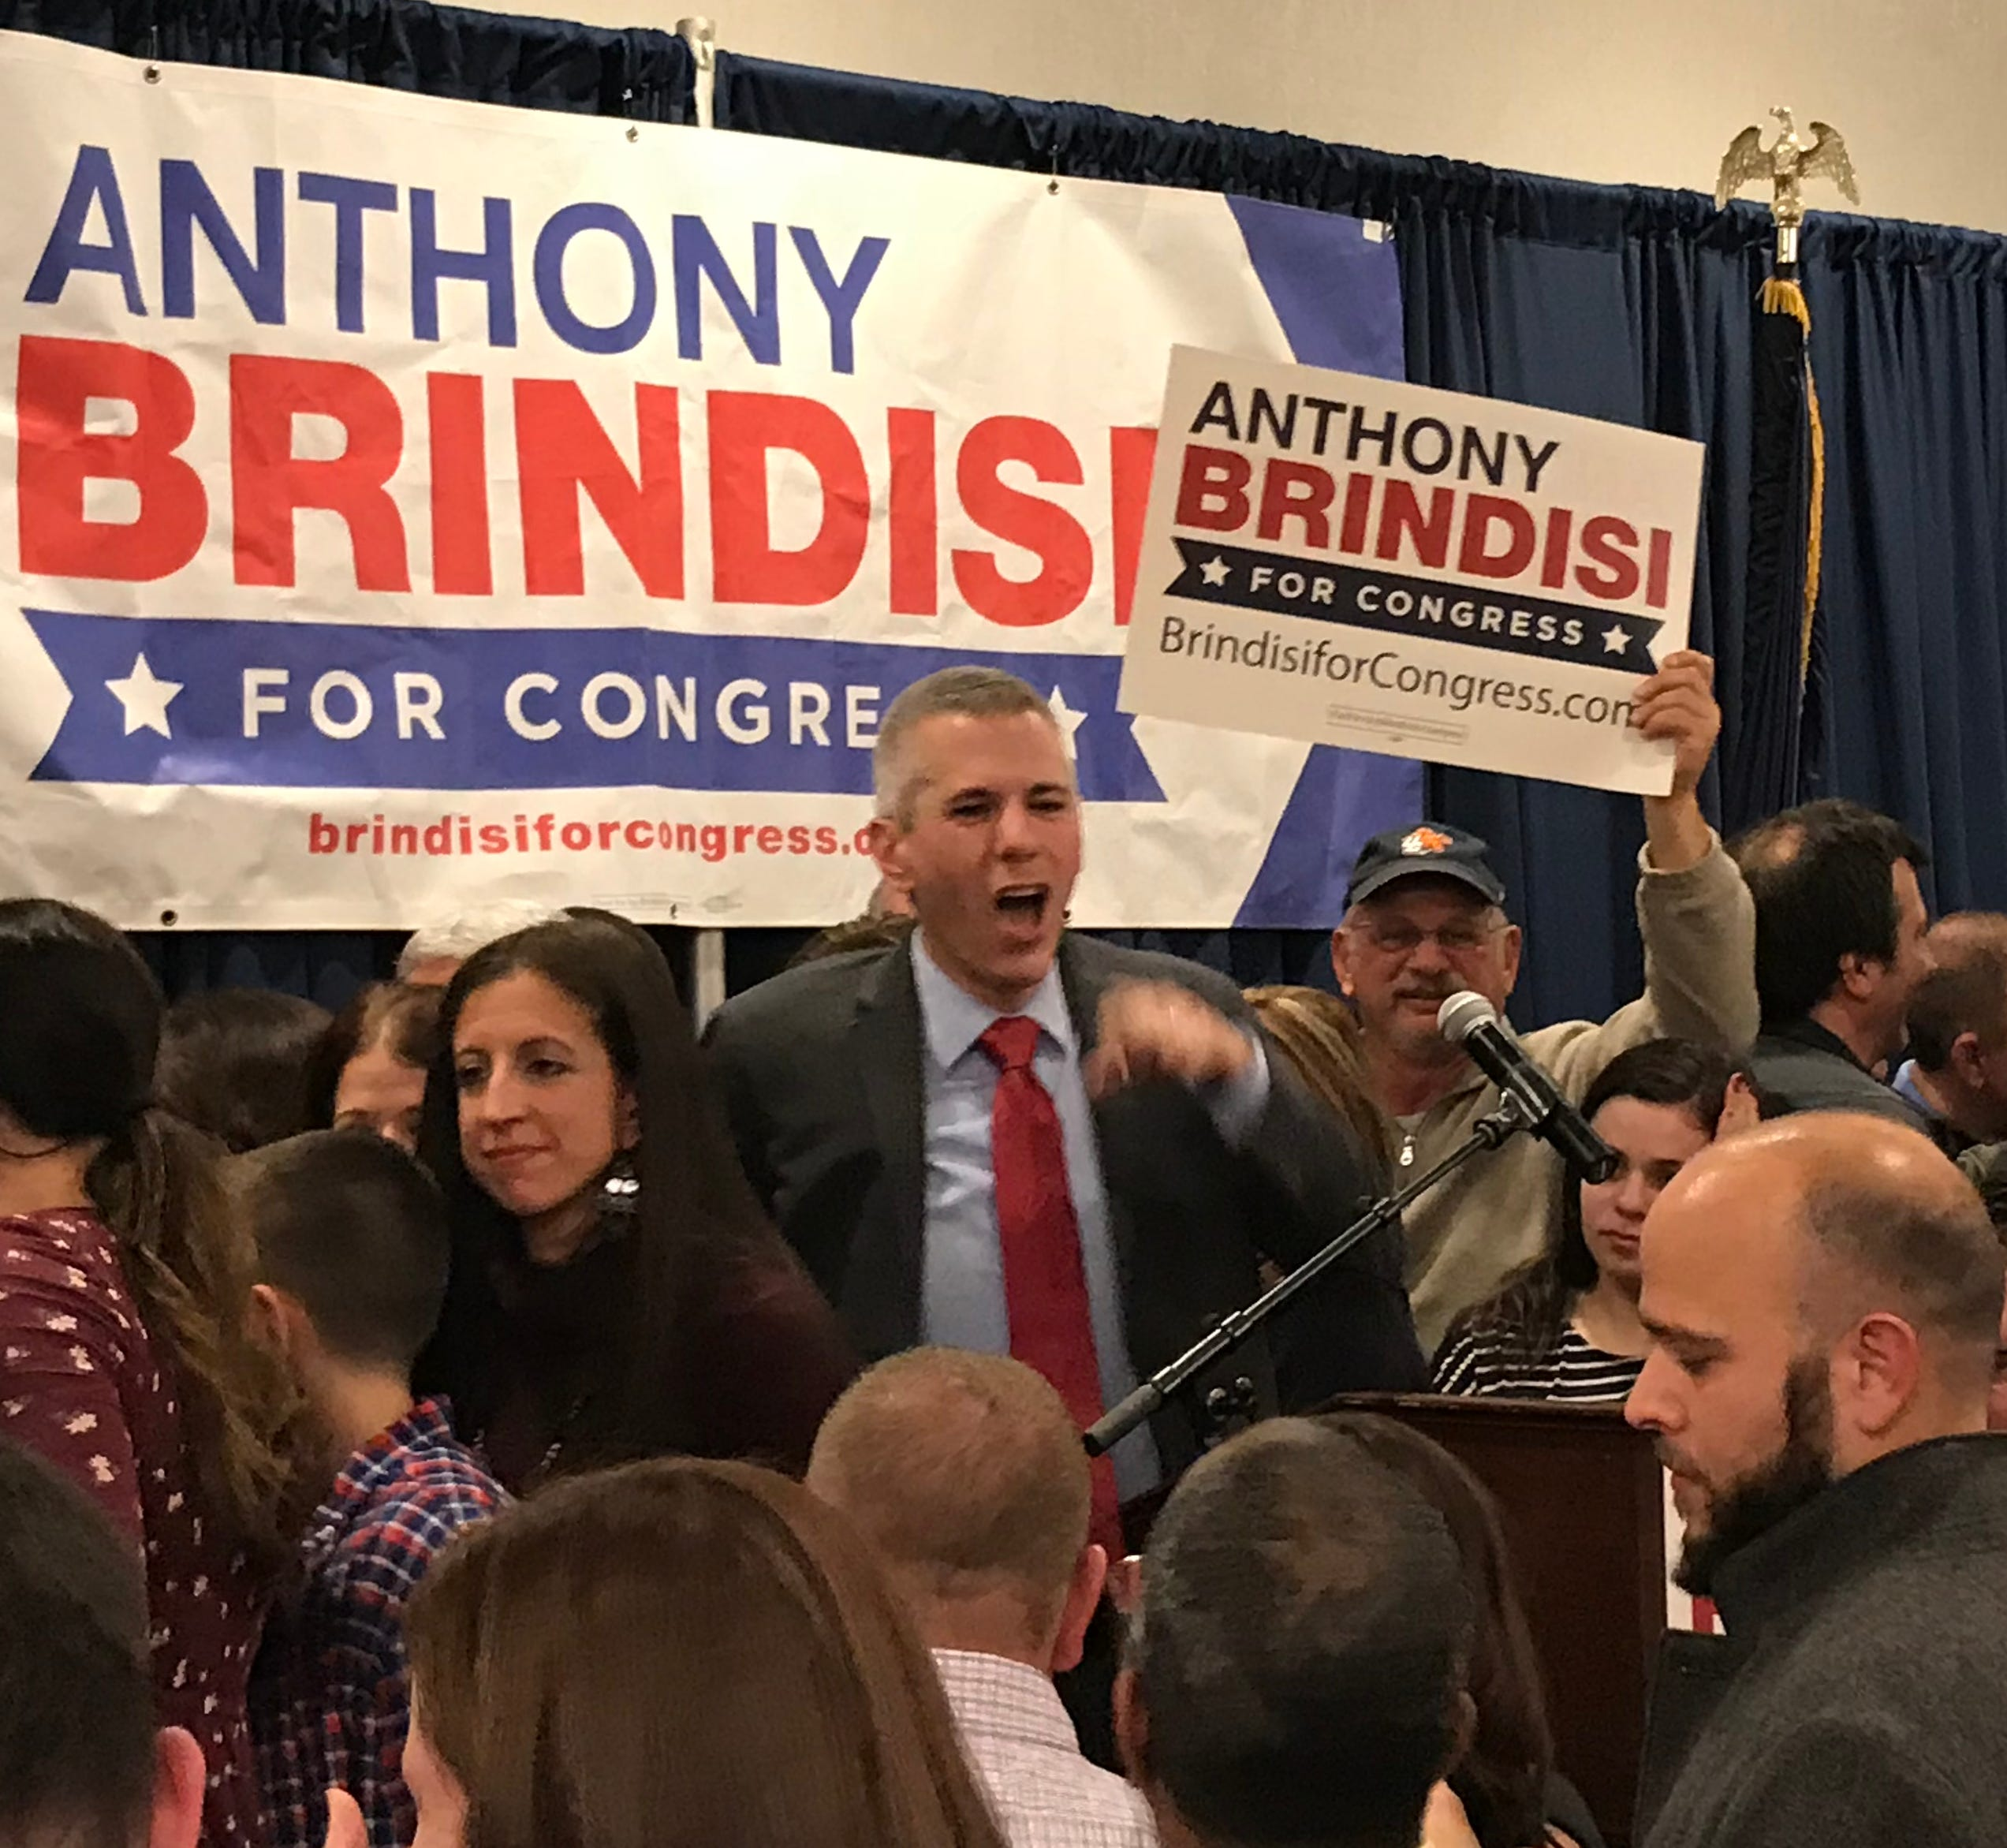 Anthony Brindisi celebrates as the votes come in Tuesday, Nov. 6, 2018 at the Delta Hotel in Utica.